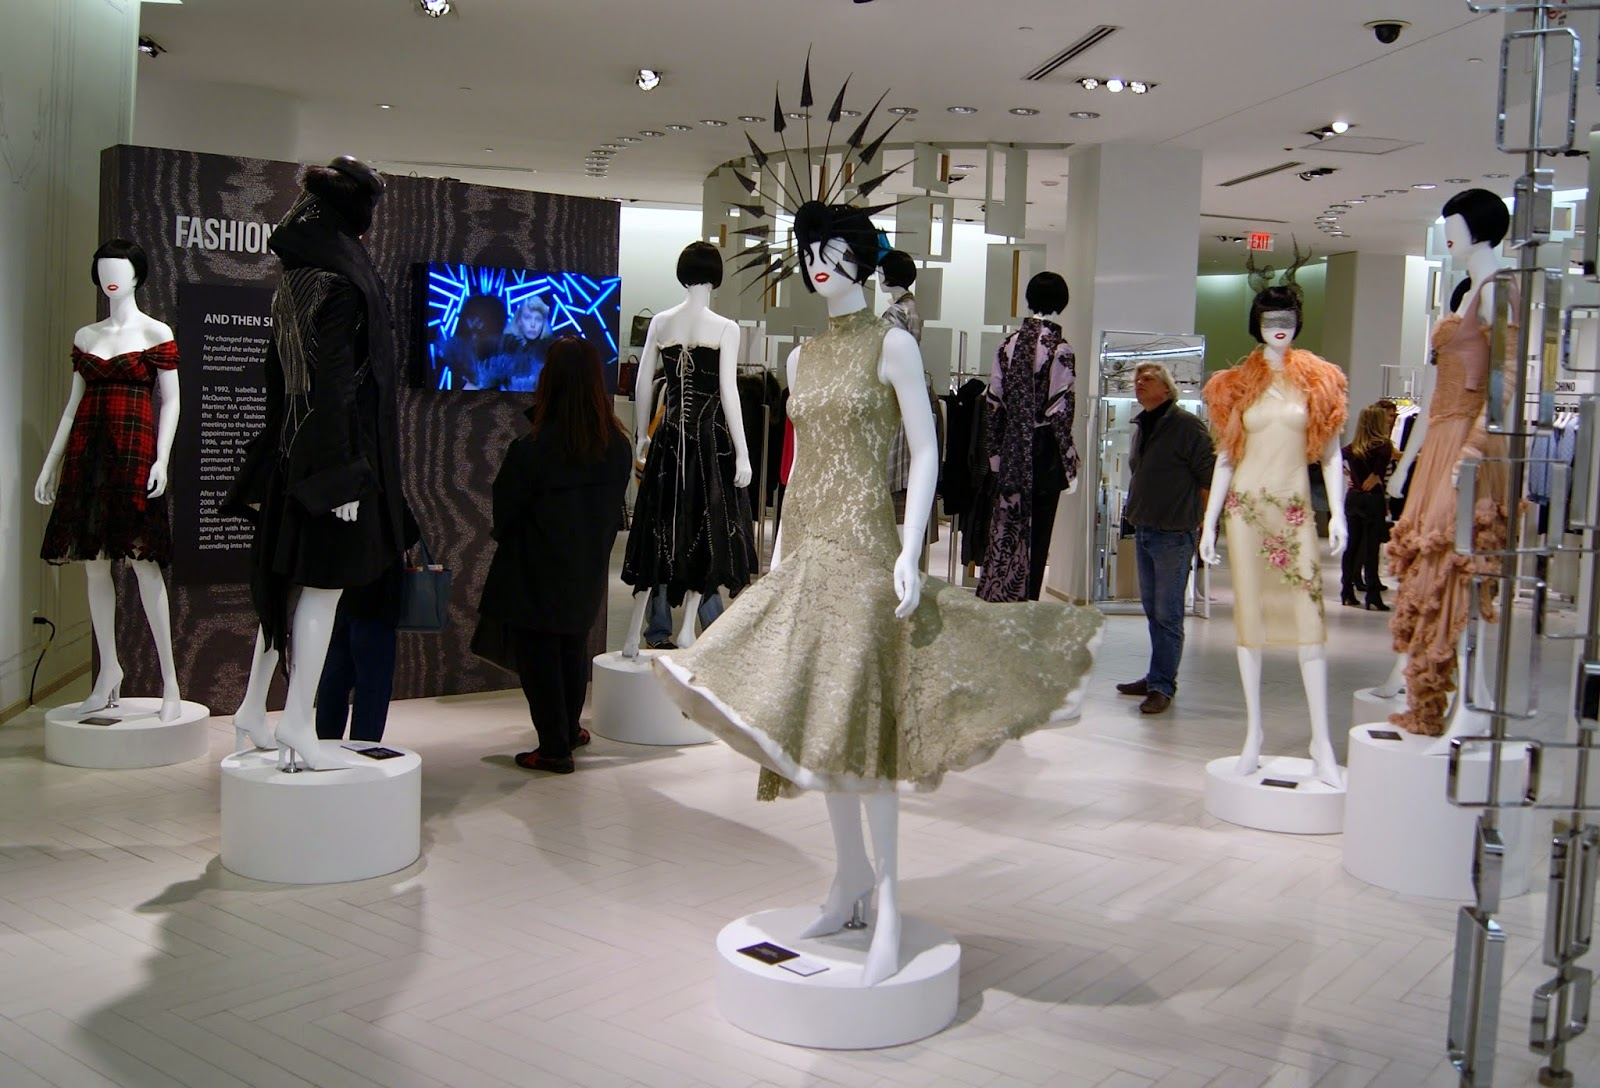 Fashion Blows Exhibit at Hudson's Bay in Toronto, Isabella, Daupne Guinness, Style, Culture, foundation, alexander mcqueen, philip treacy, suicide,the purple scarf, melanie.ps, ontario, canada, the room,